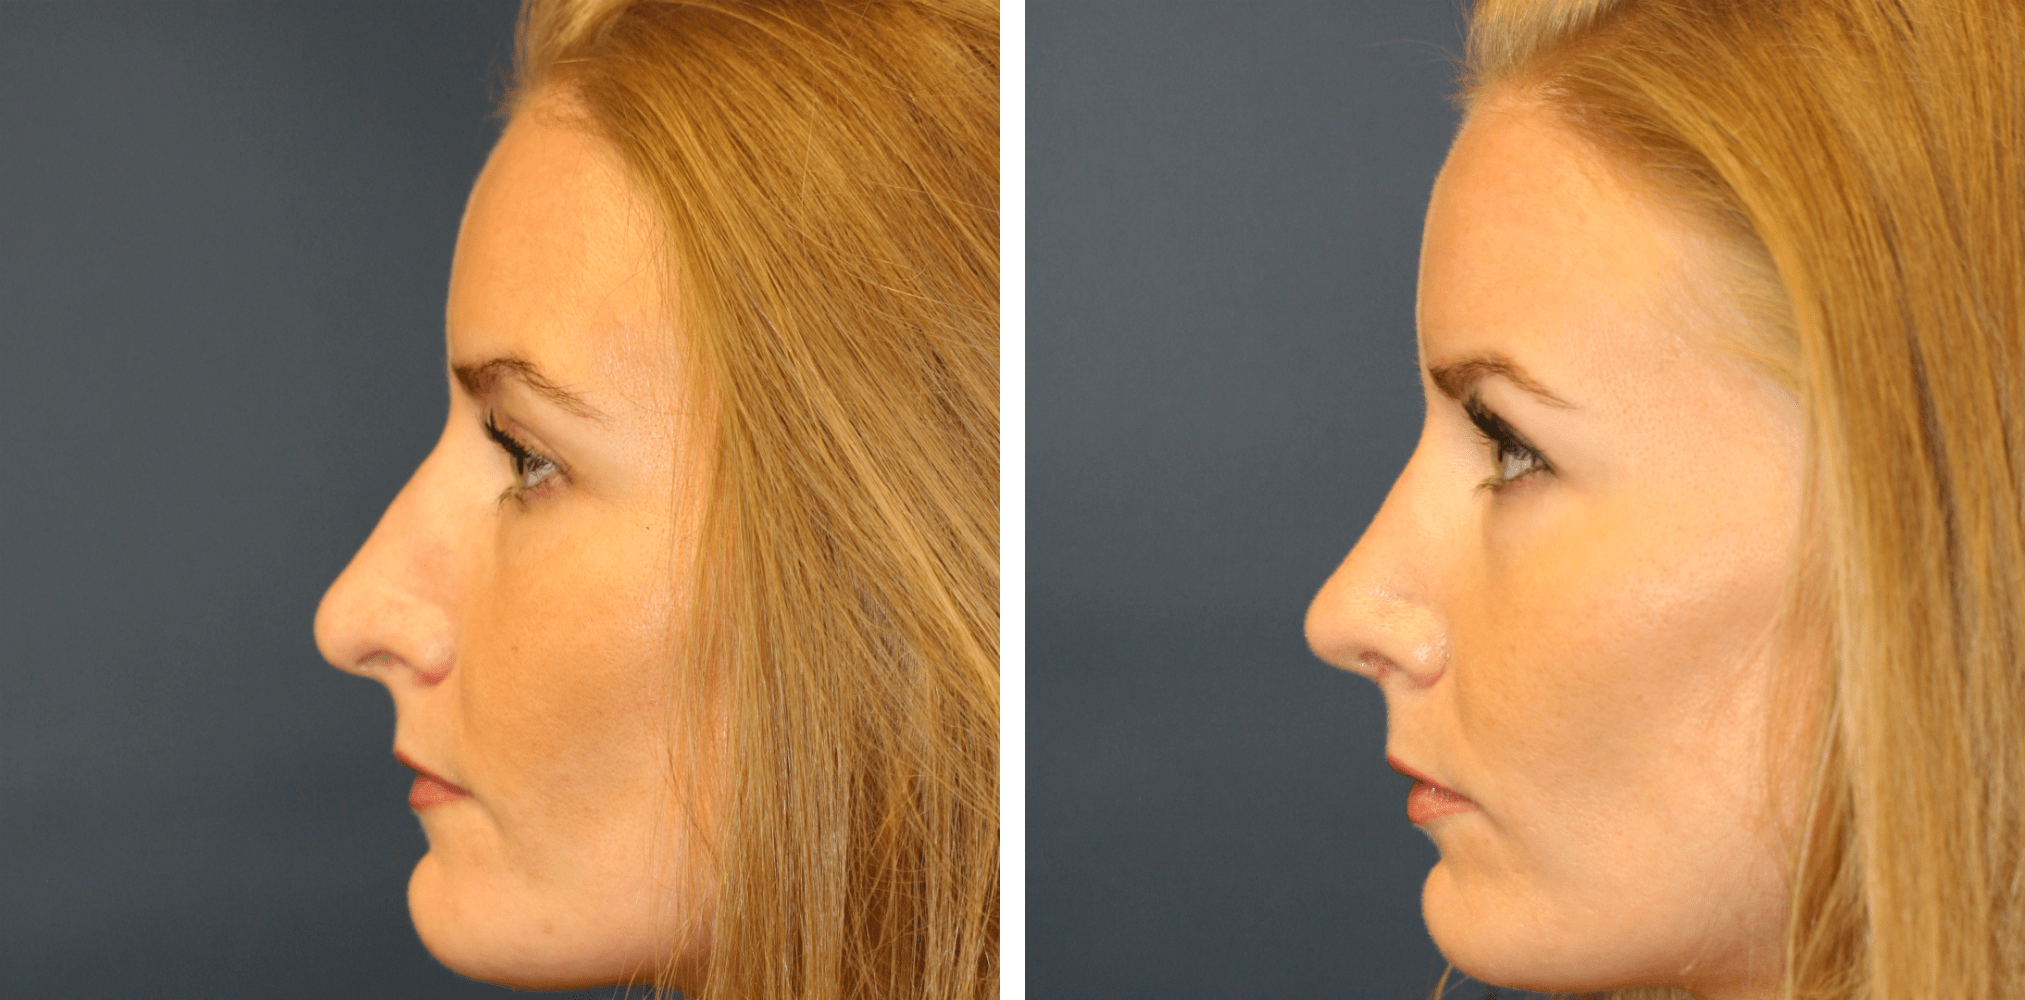 How long does it take to recover from rhinoplasty ...